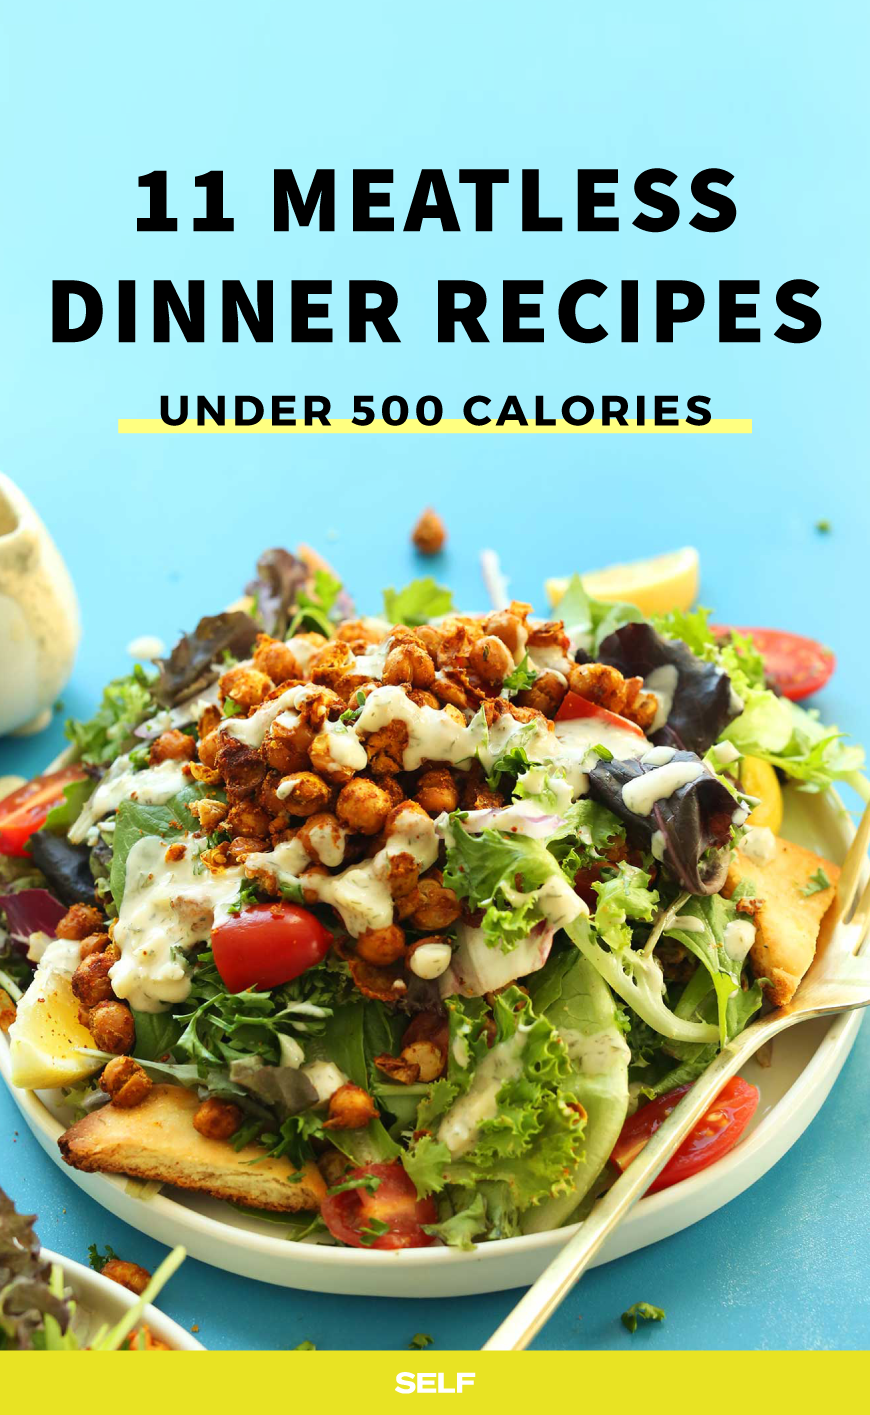 11 High Protein Meatless Dinners Under 500 Calories Vegetarian Recipes Under 500 Calories High Protein Vegetarian Recipes Dinners Under 500 Calories